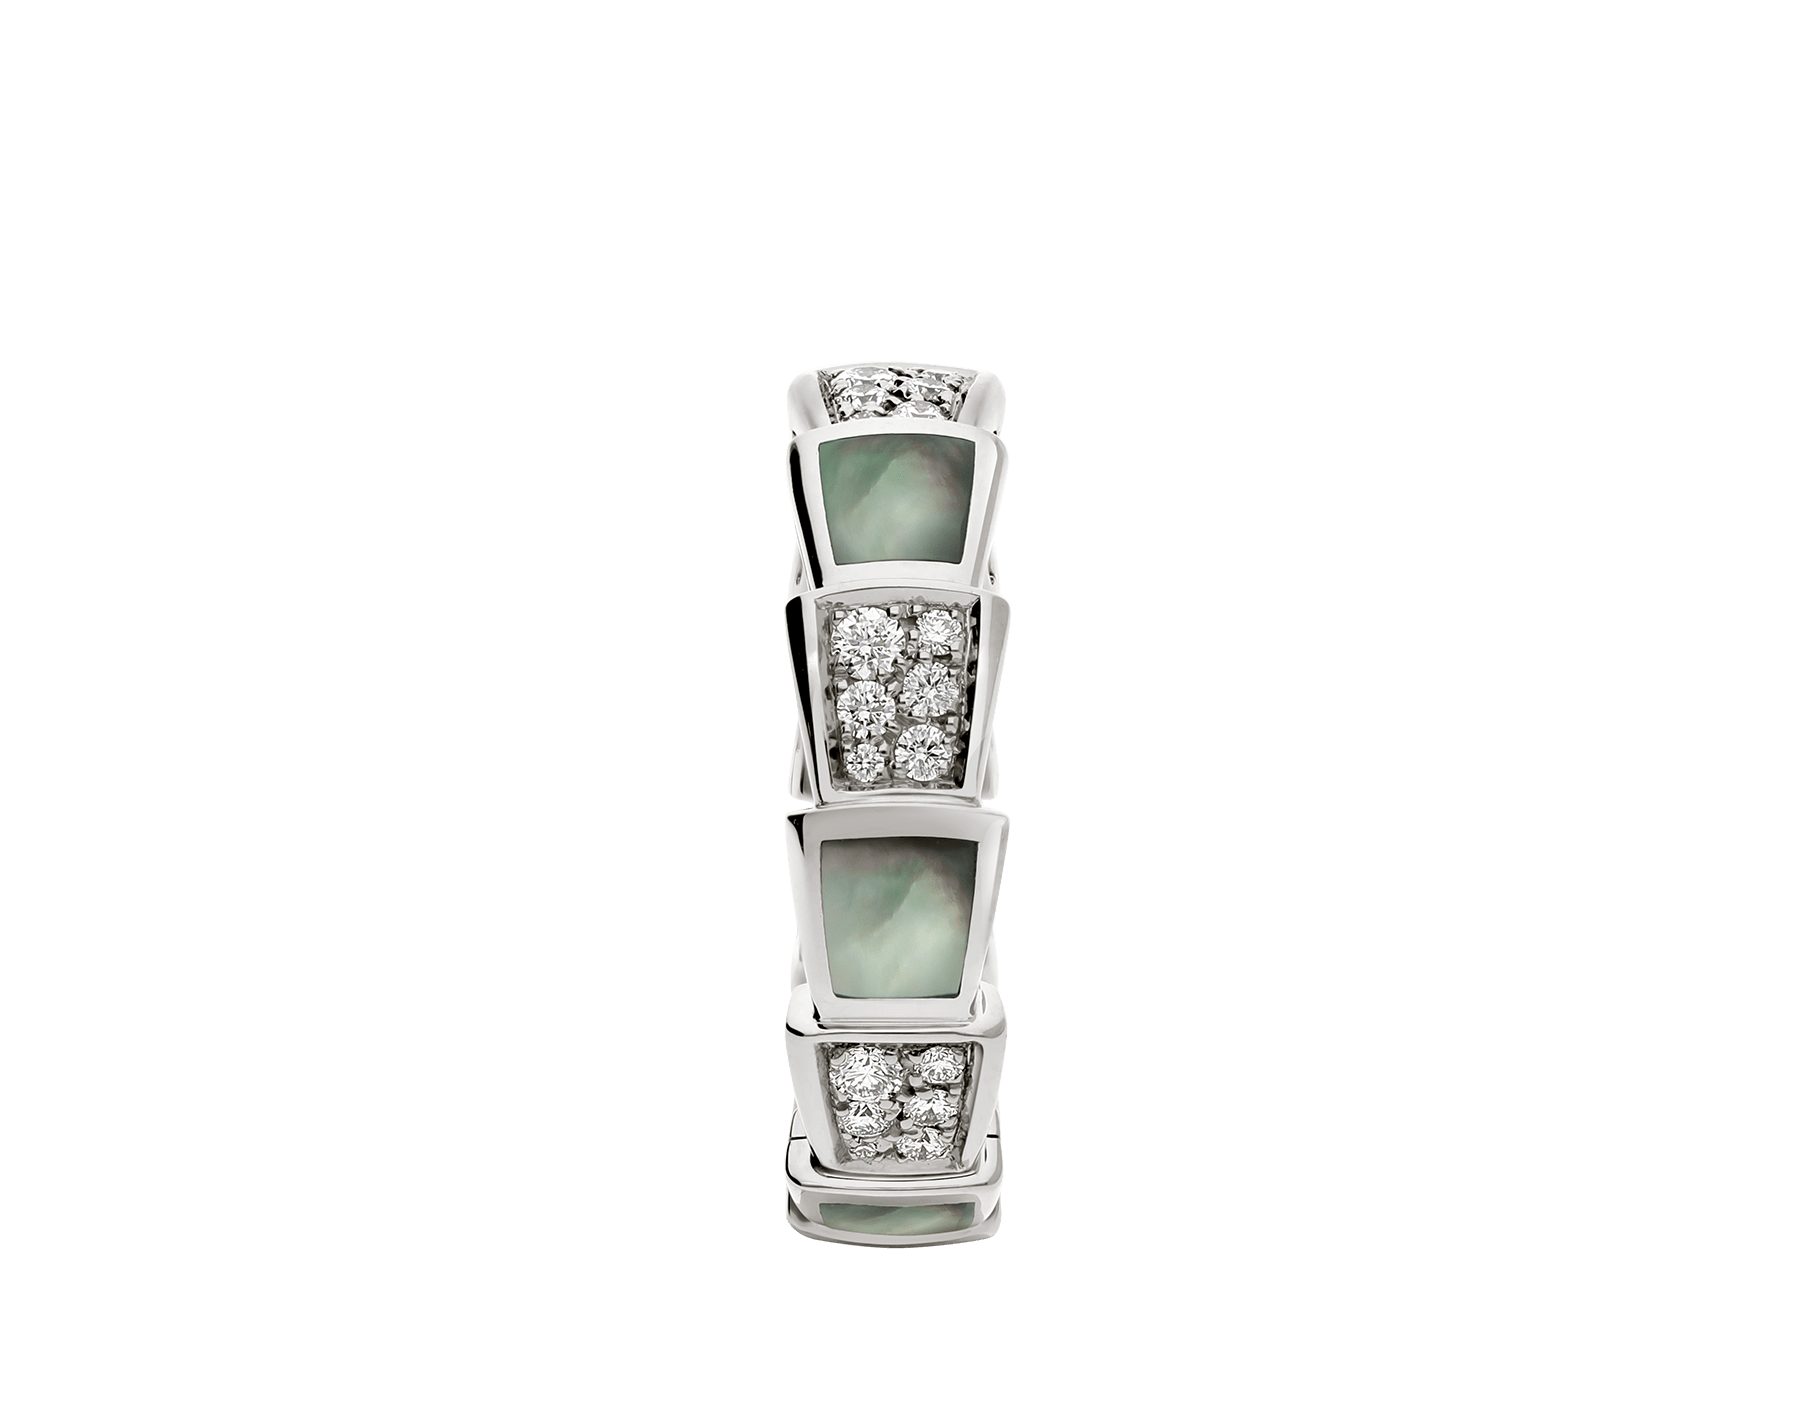 Serpenti Viper band ring in 18 kt white gold set with grey mother-of-pearl elements and pavé diamonds . AN857900 image 2